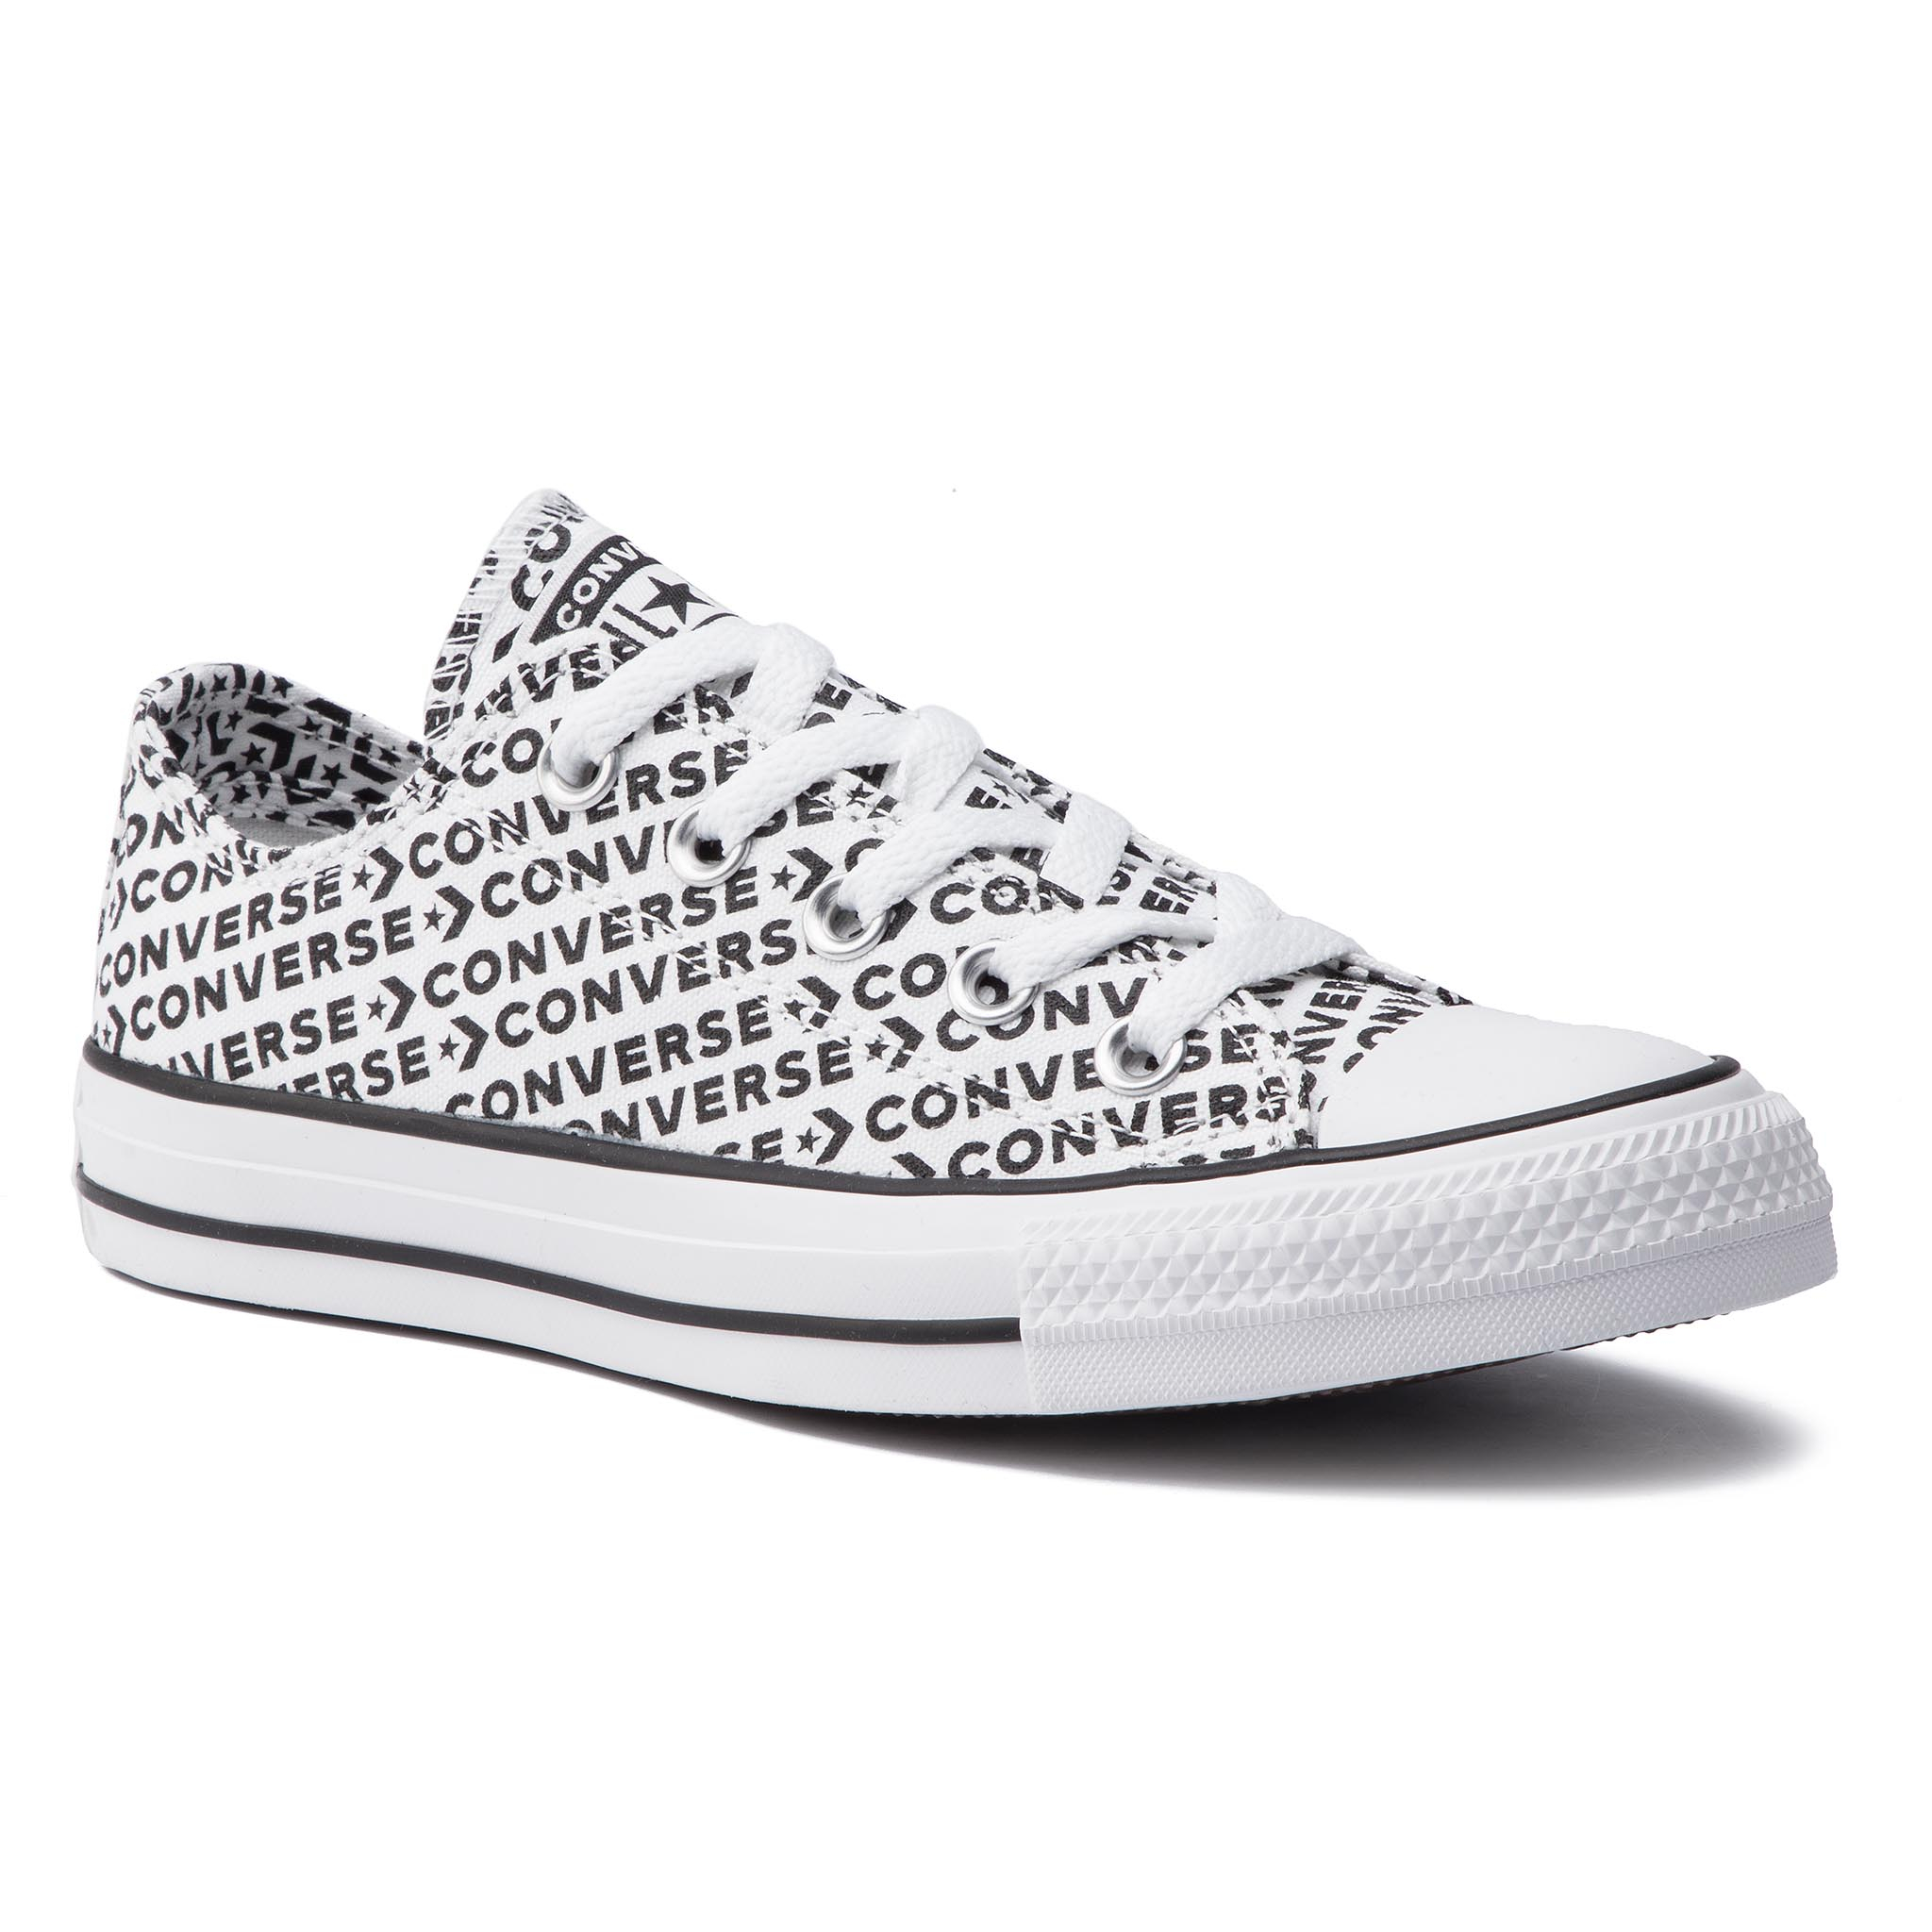 Teniși Converse - Ctas Ox 164020c White/Black/White imagine epantofi.ro 2021